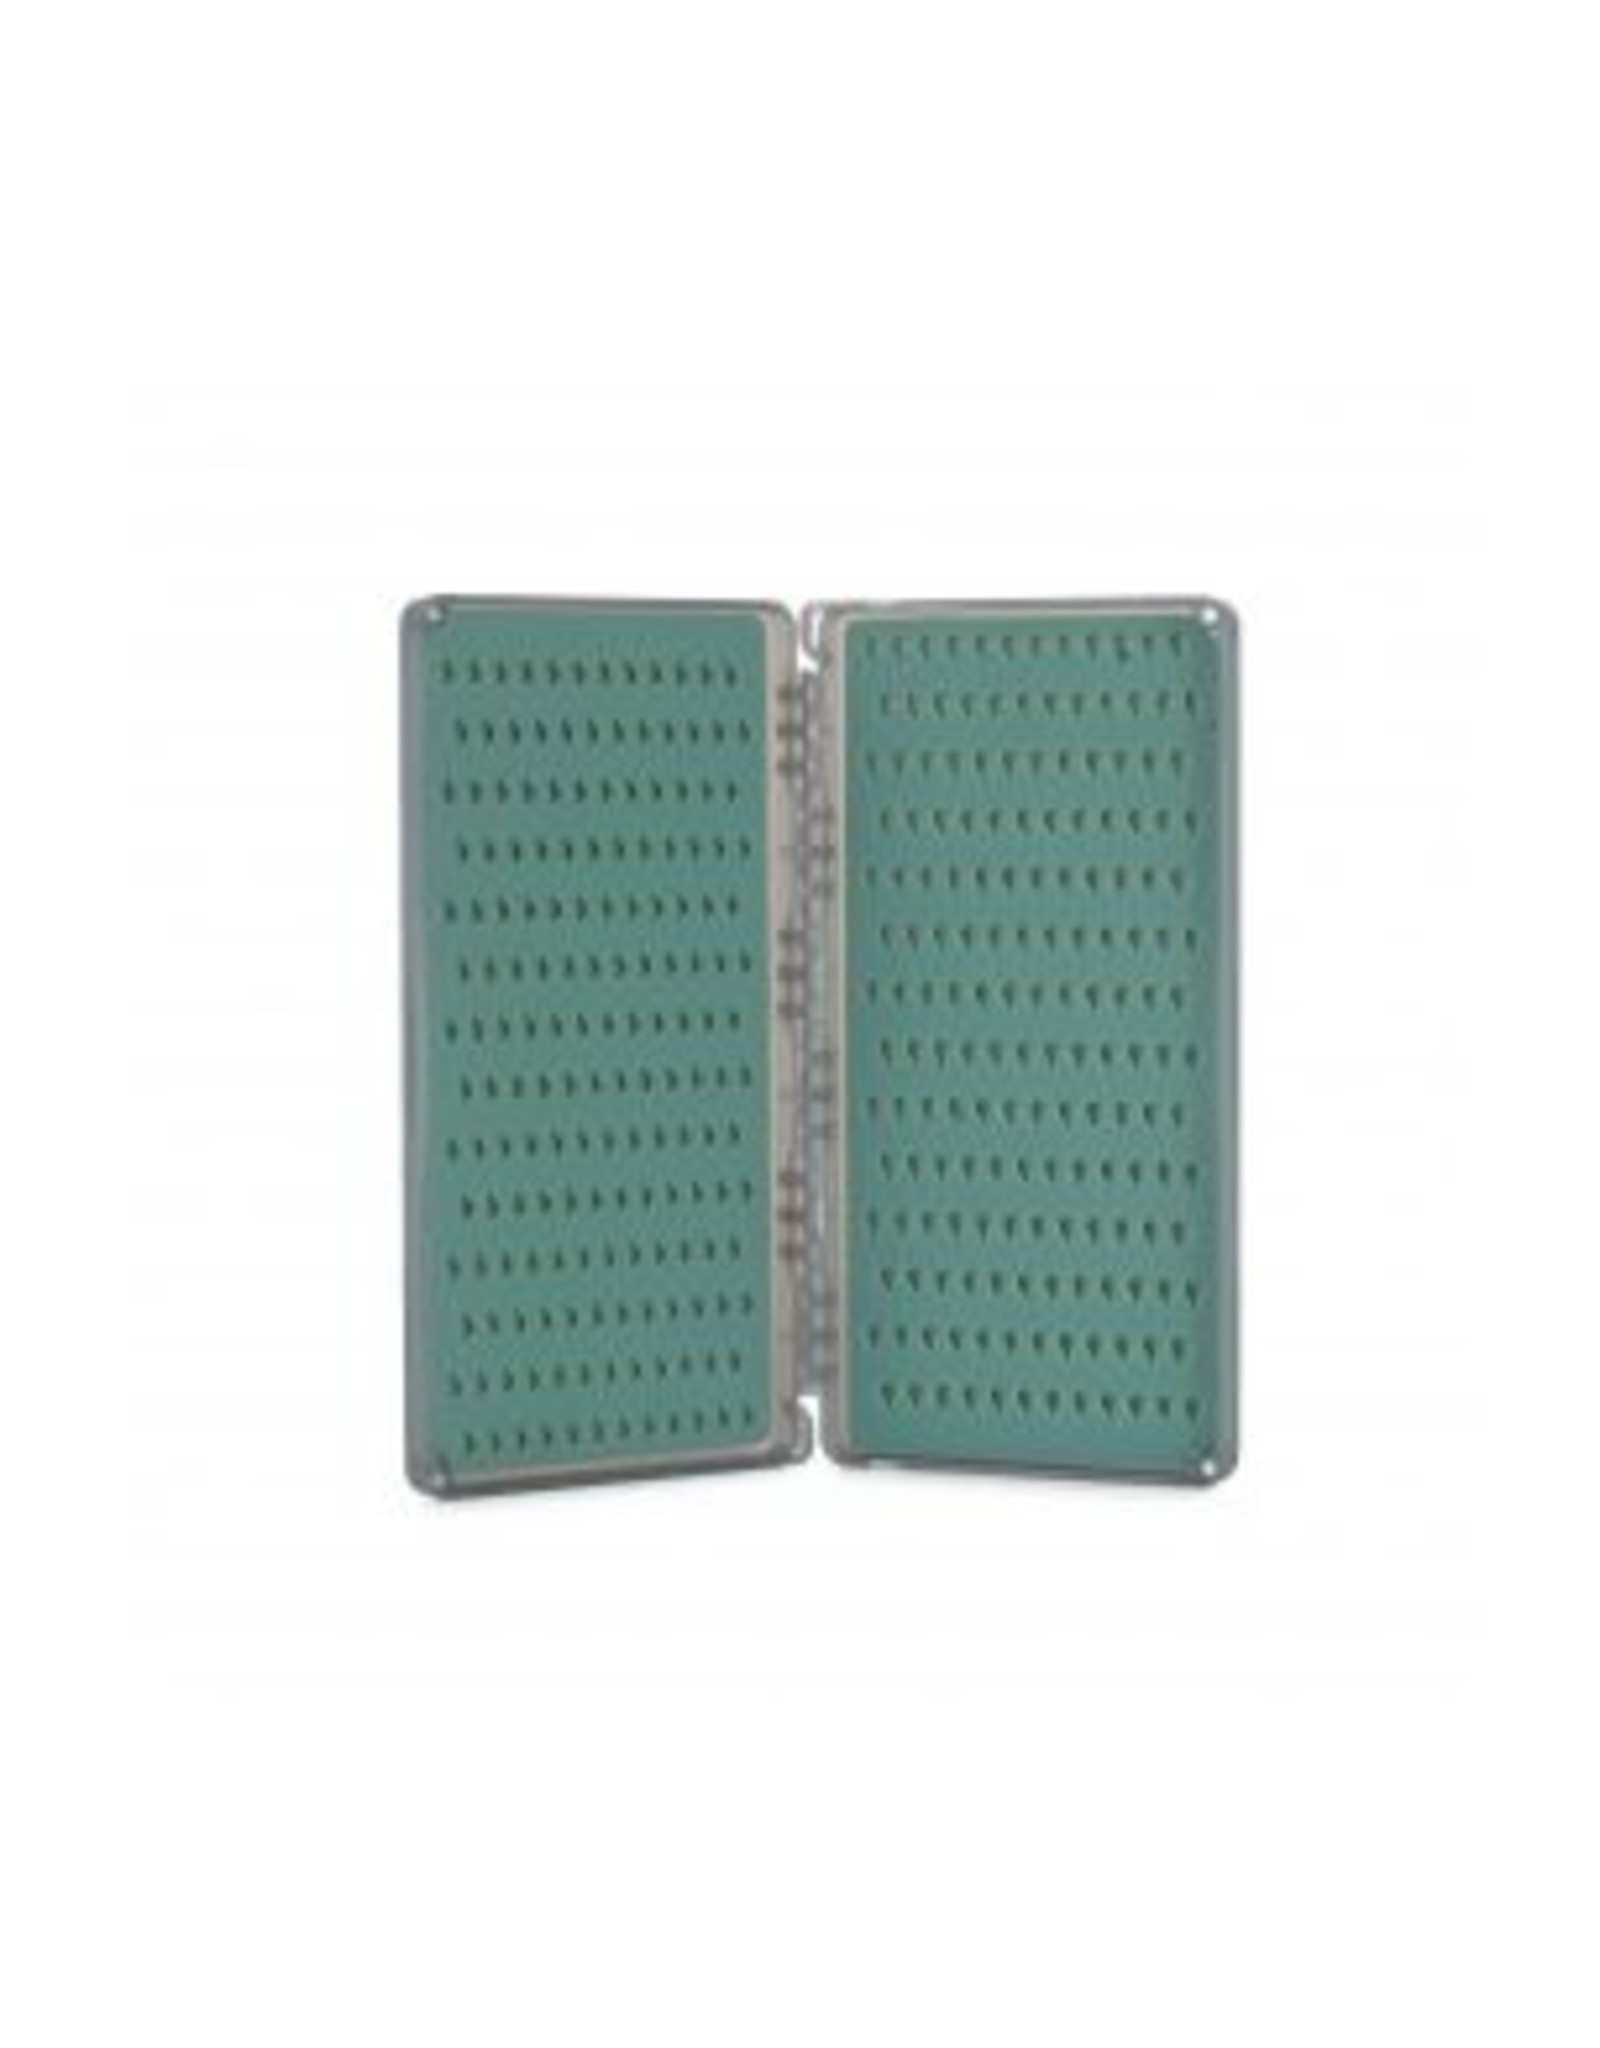 Fishpond Tacky Original Fly Box 2X  - Double Sided